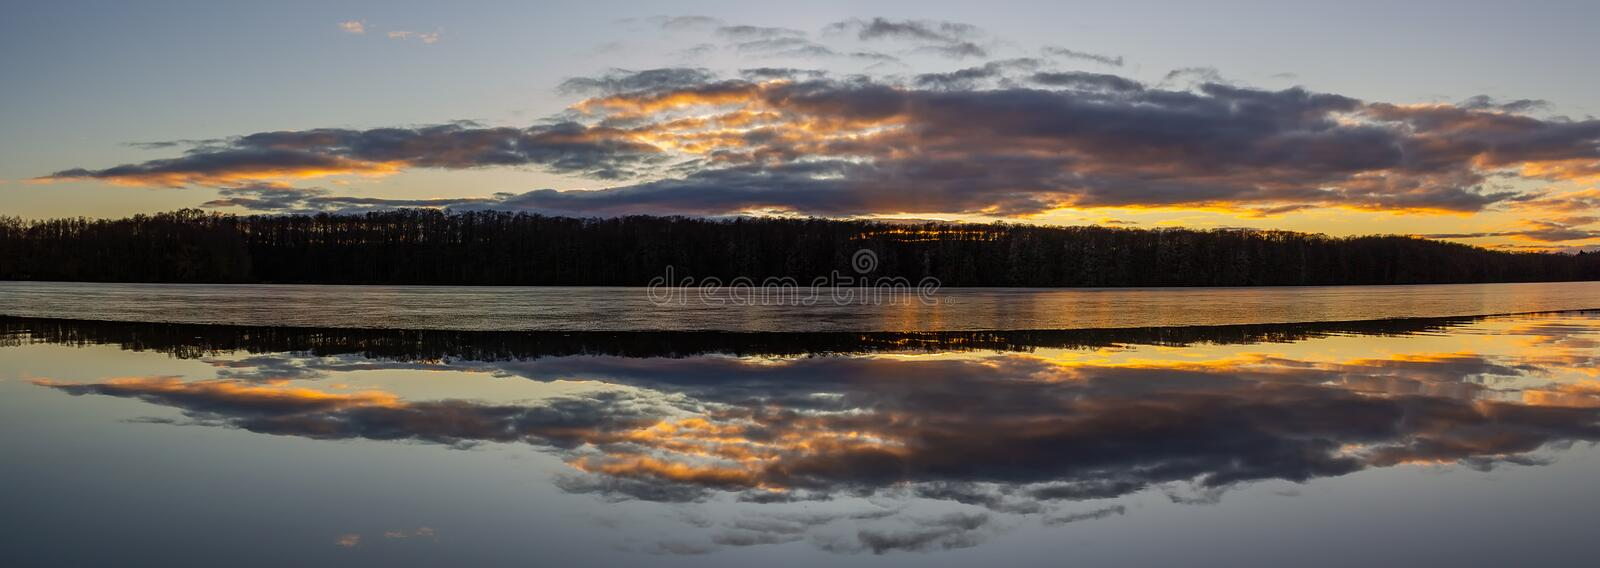 Panoramic view to icy pond  with trees at sunset. Czech landscape stock images